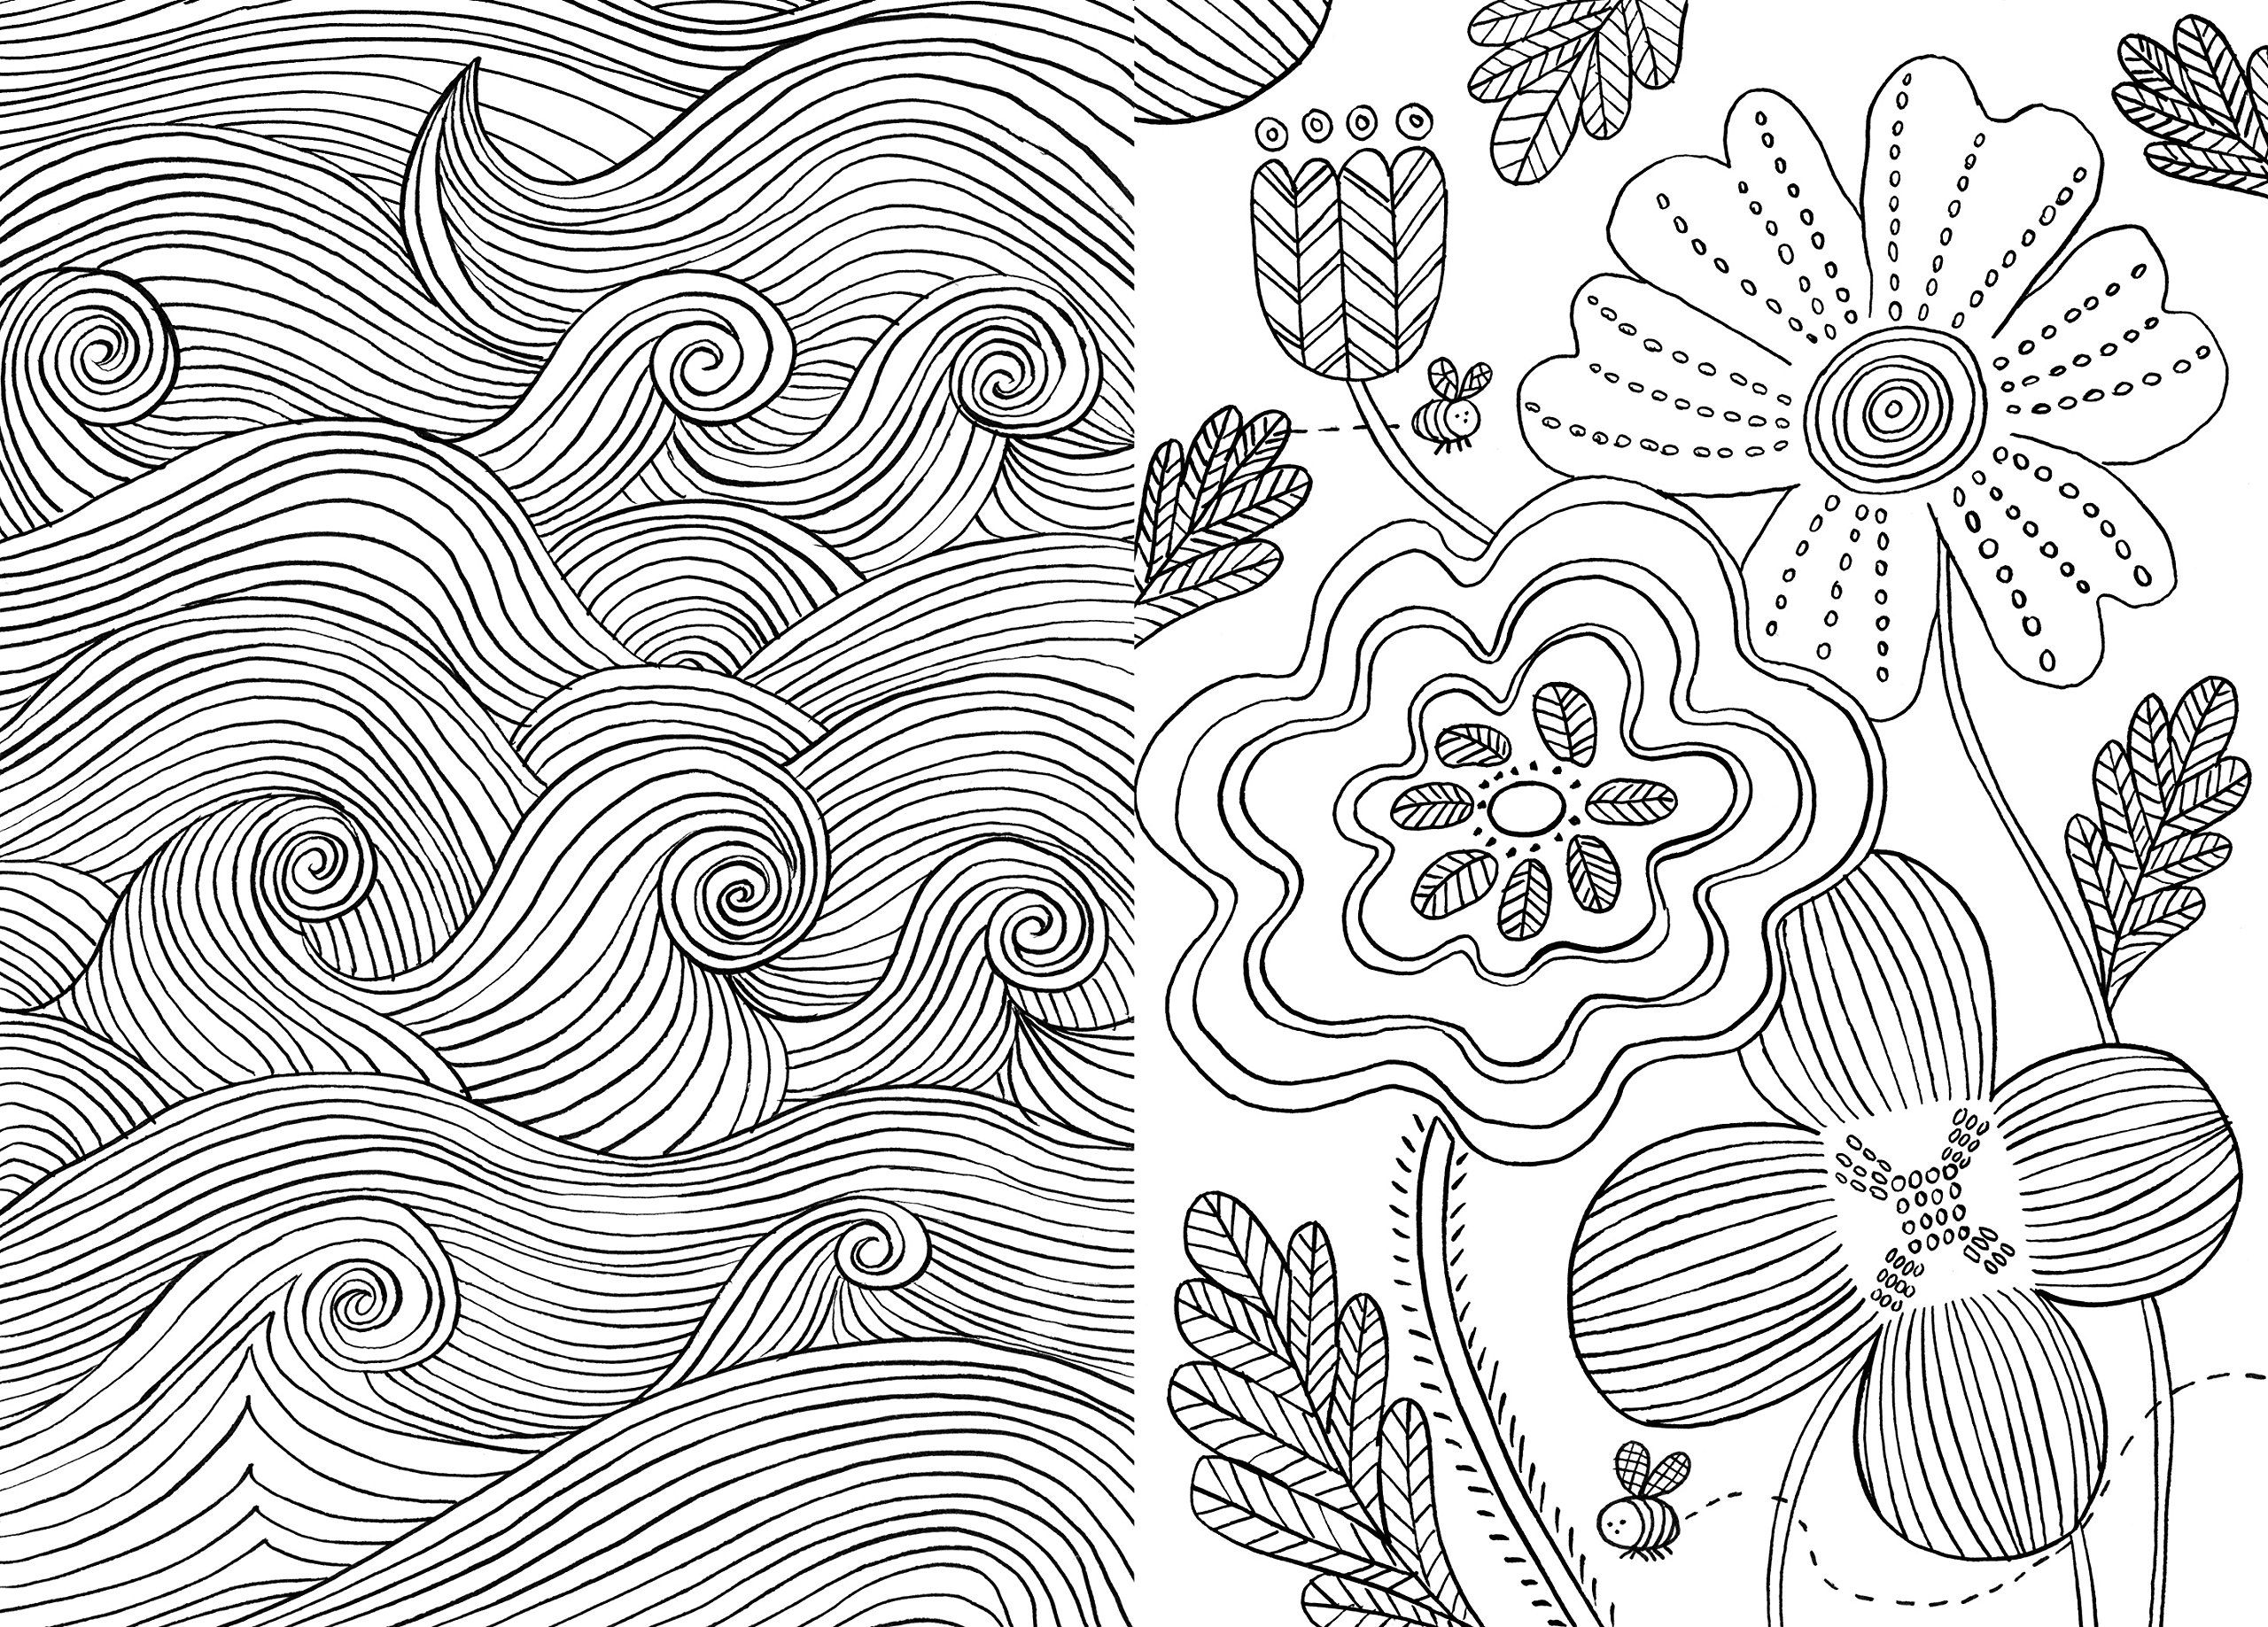 The Mindfulness Colouring Book Anti Stress Art Therapy For Busy People Amazon Co Uk Art Therapy Coloring Book Anti Stress Coloring Book Stress Coloring Book